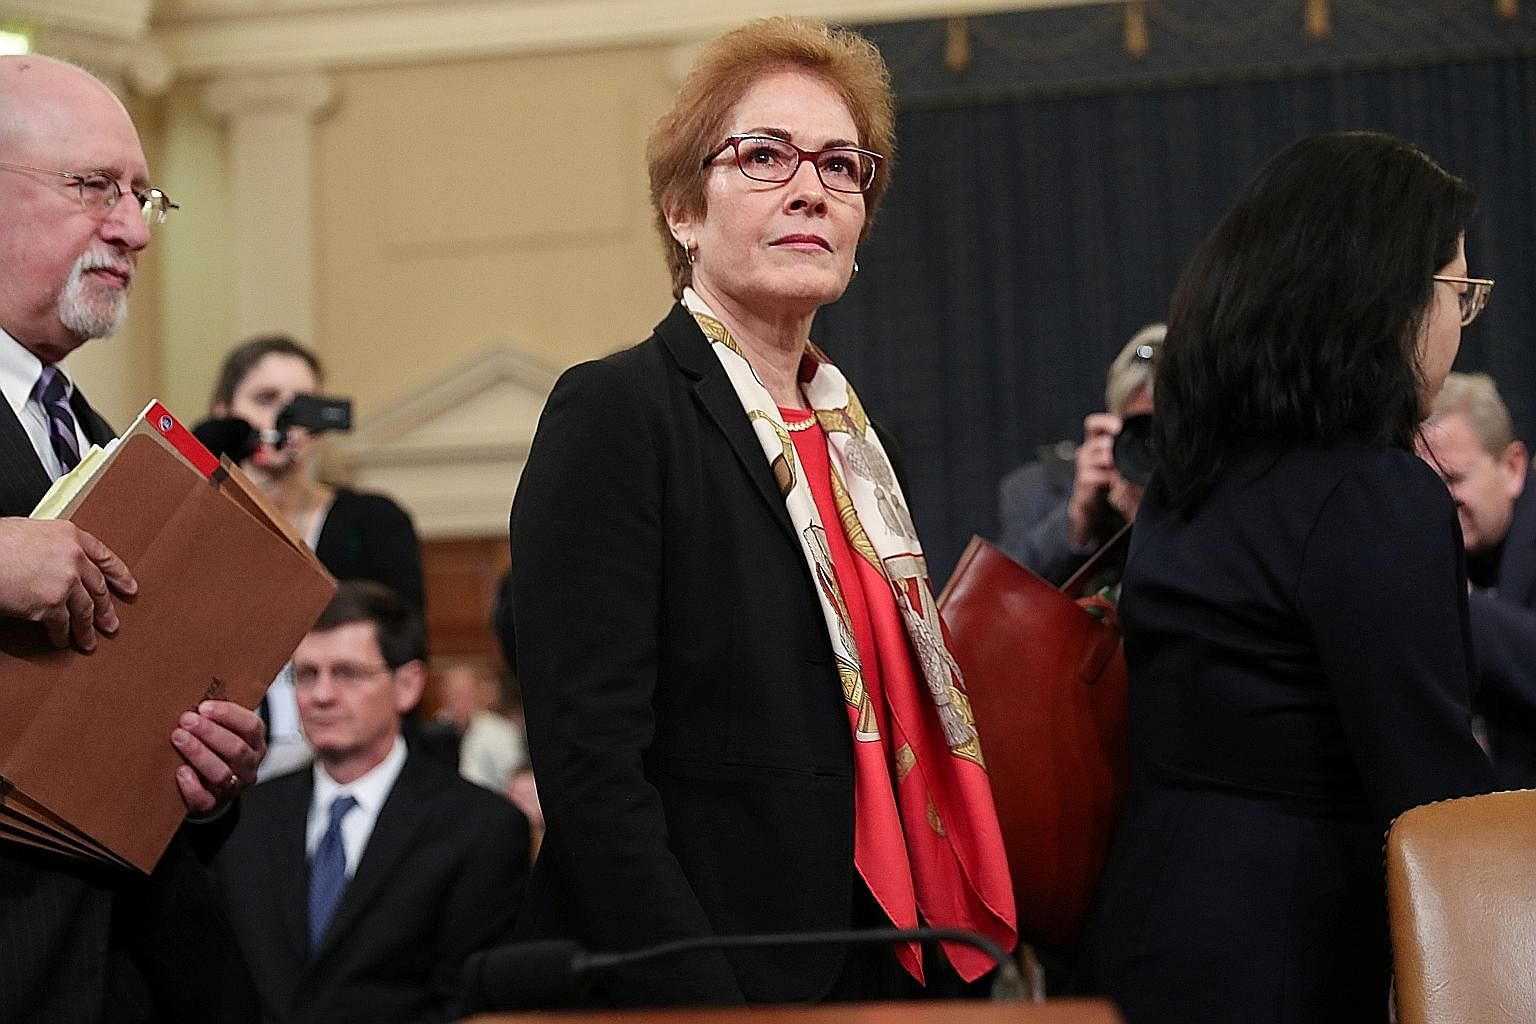 Former US ambassador to Ukraine Marie Yovanovitch leaving after her testimony on Friday as part of the US Congress' impeachment inquiry into President Donald Trump. Ms Yovanovitch described how Mr Trump's lawyer Rudy Giuliani worked with a corrupt Uk